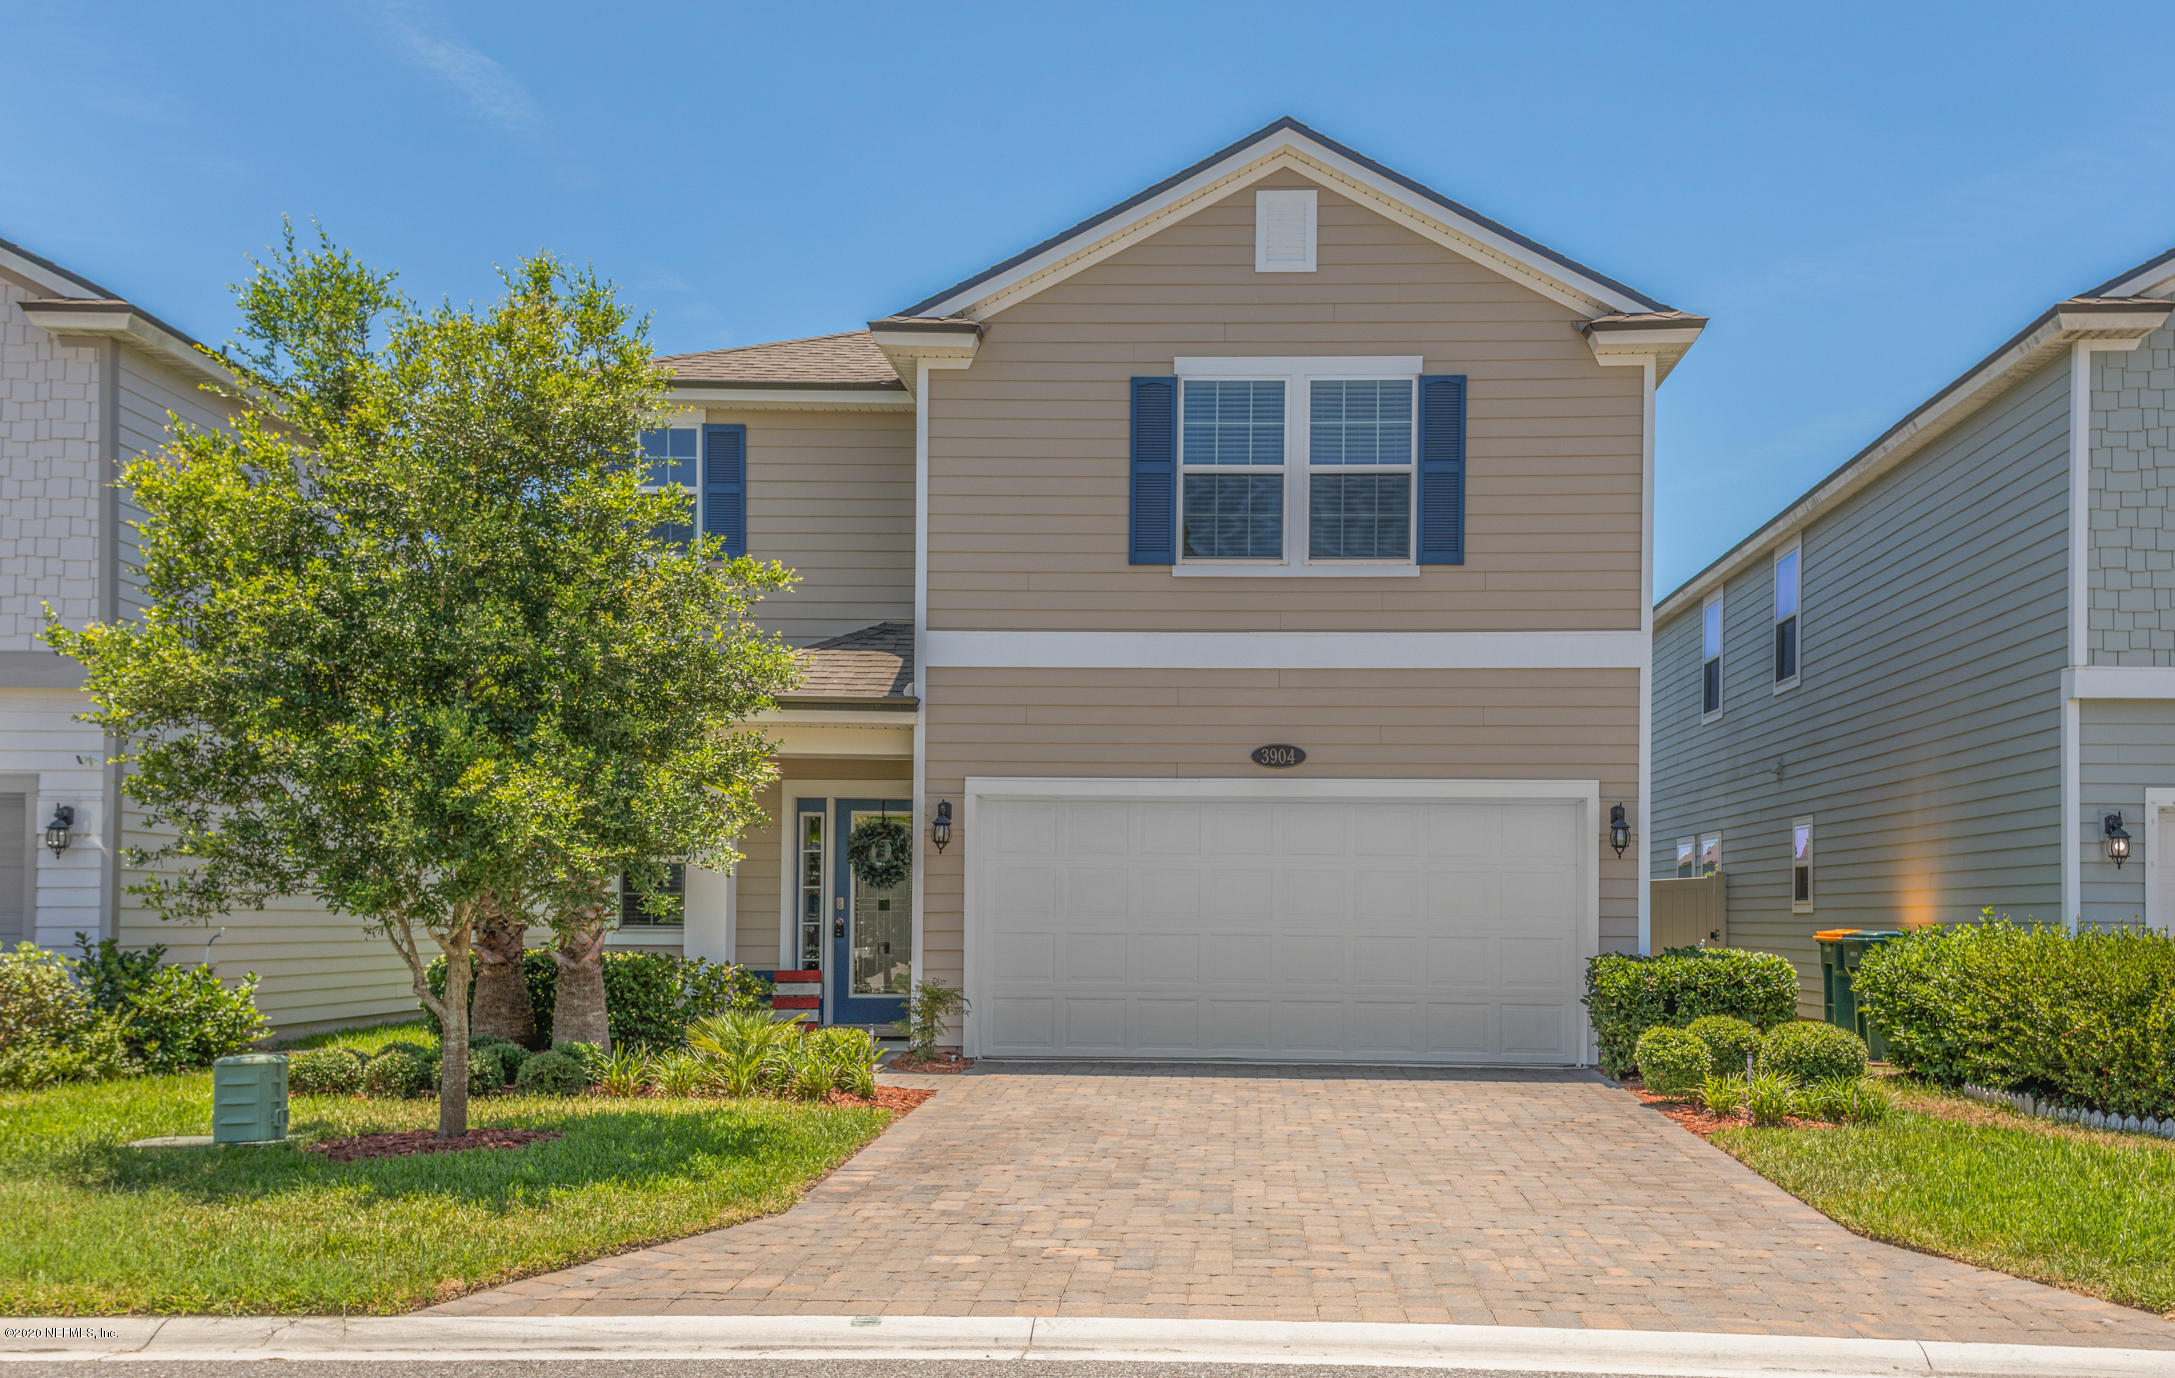 3904 Coastal Cove Cir Jacksonville, Fl 32224